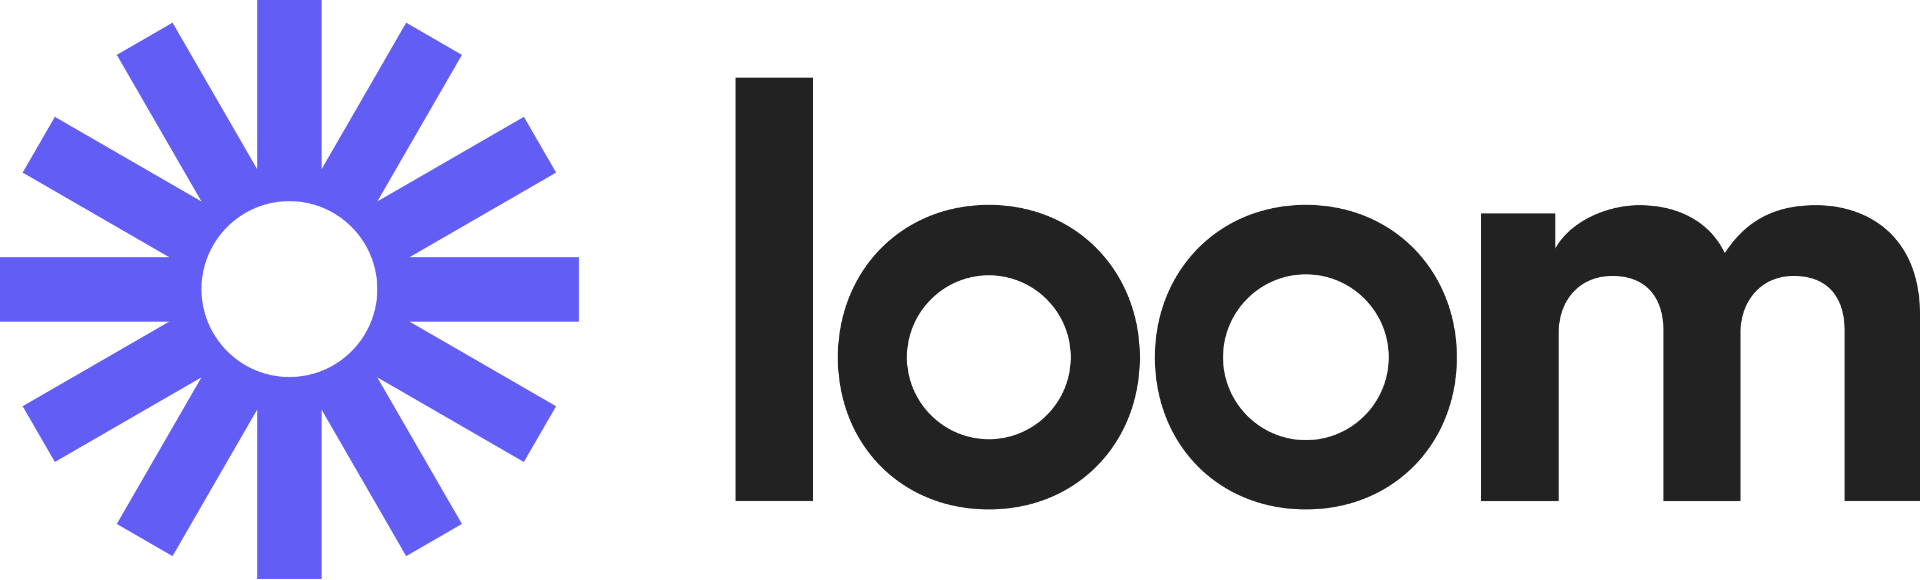 new loom logo a recommended software for Tools the Pros Use Guide by Daniel Bussius